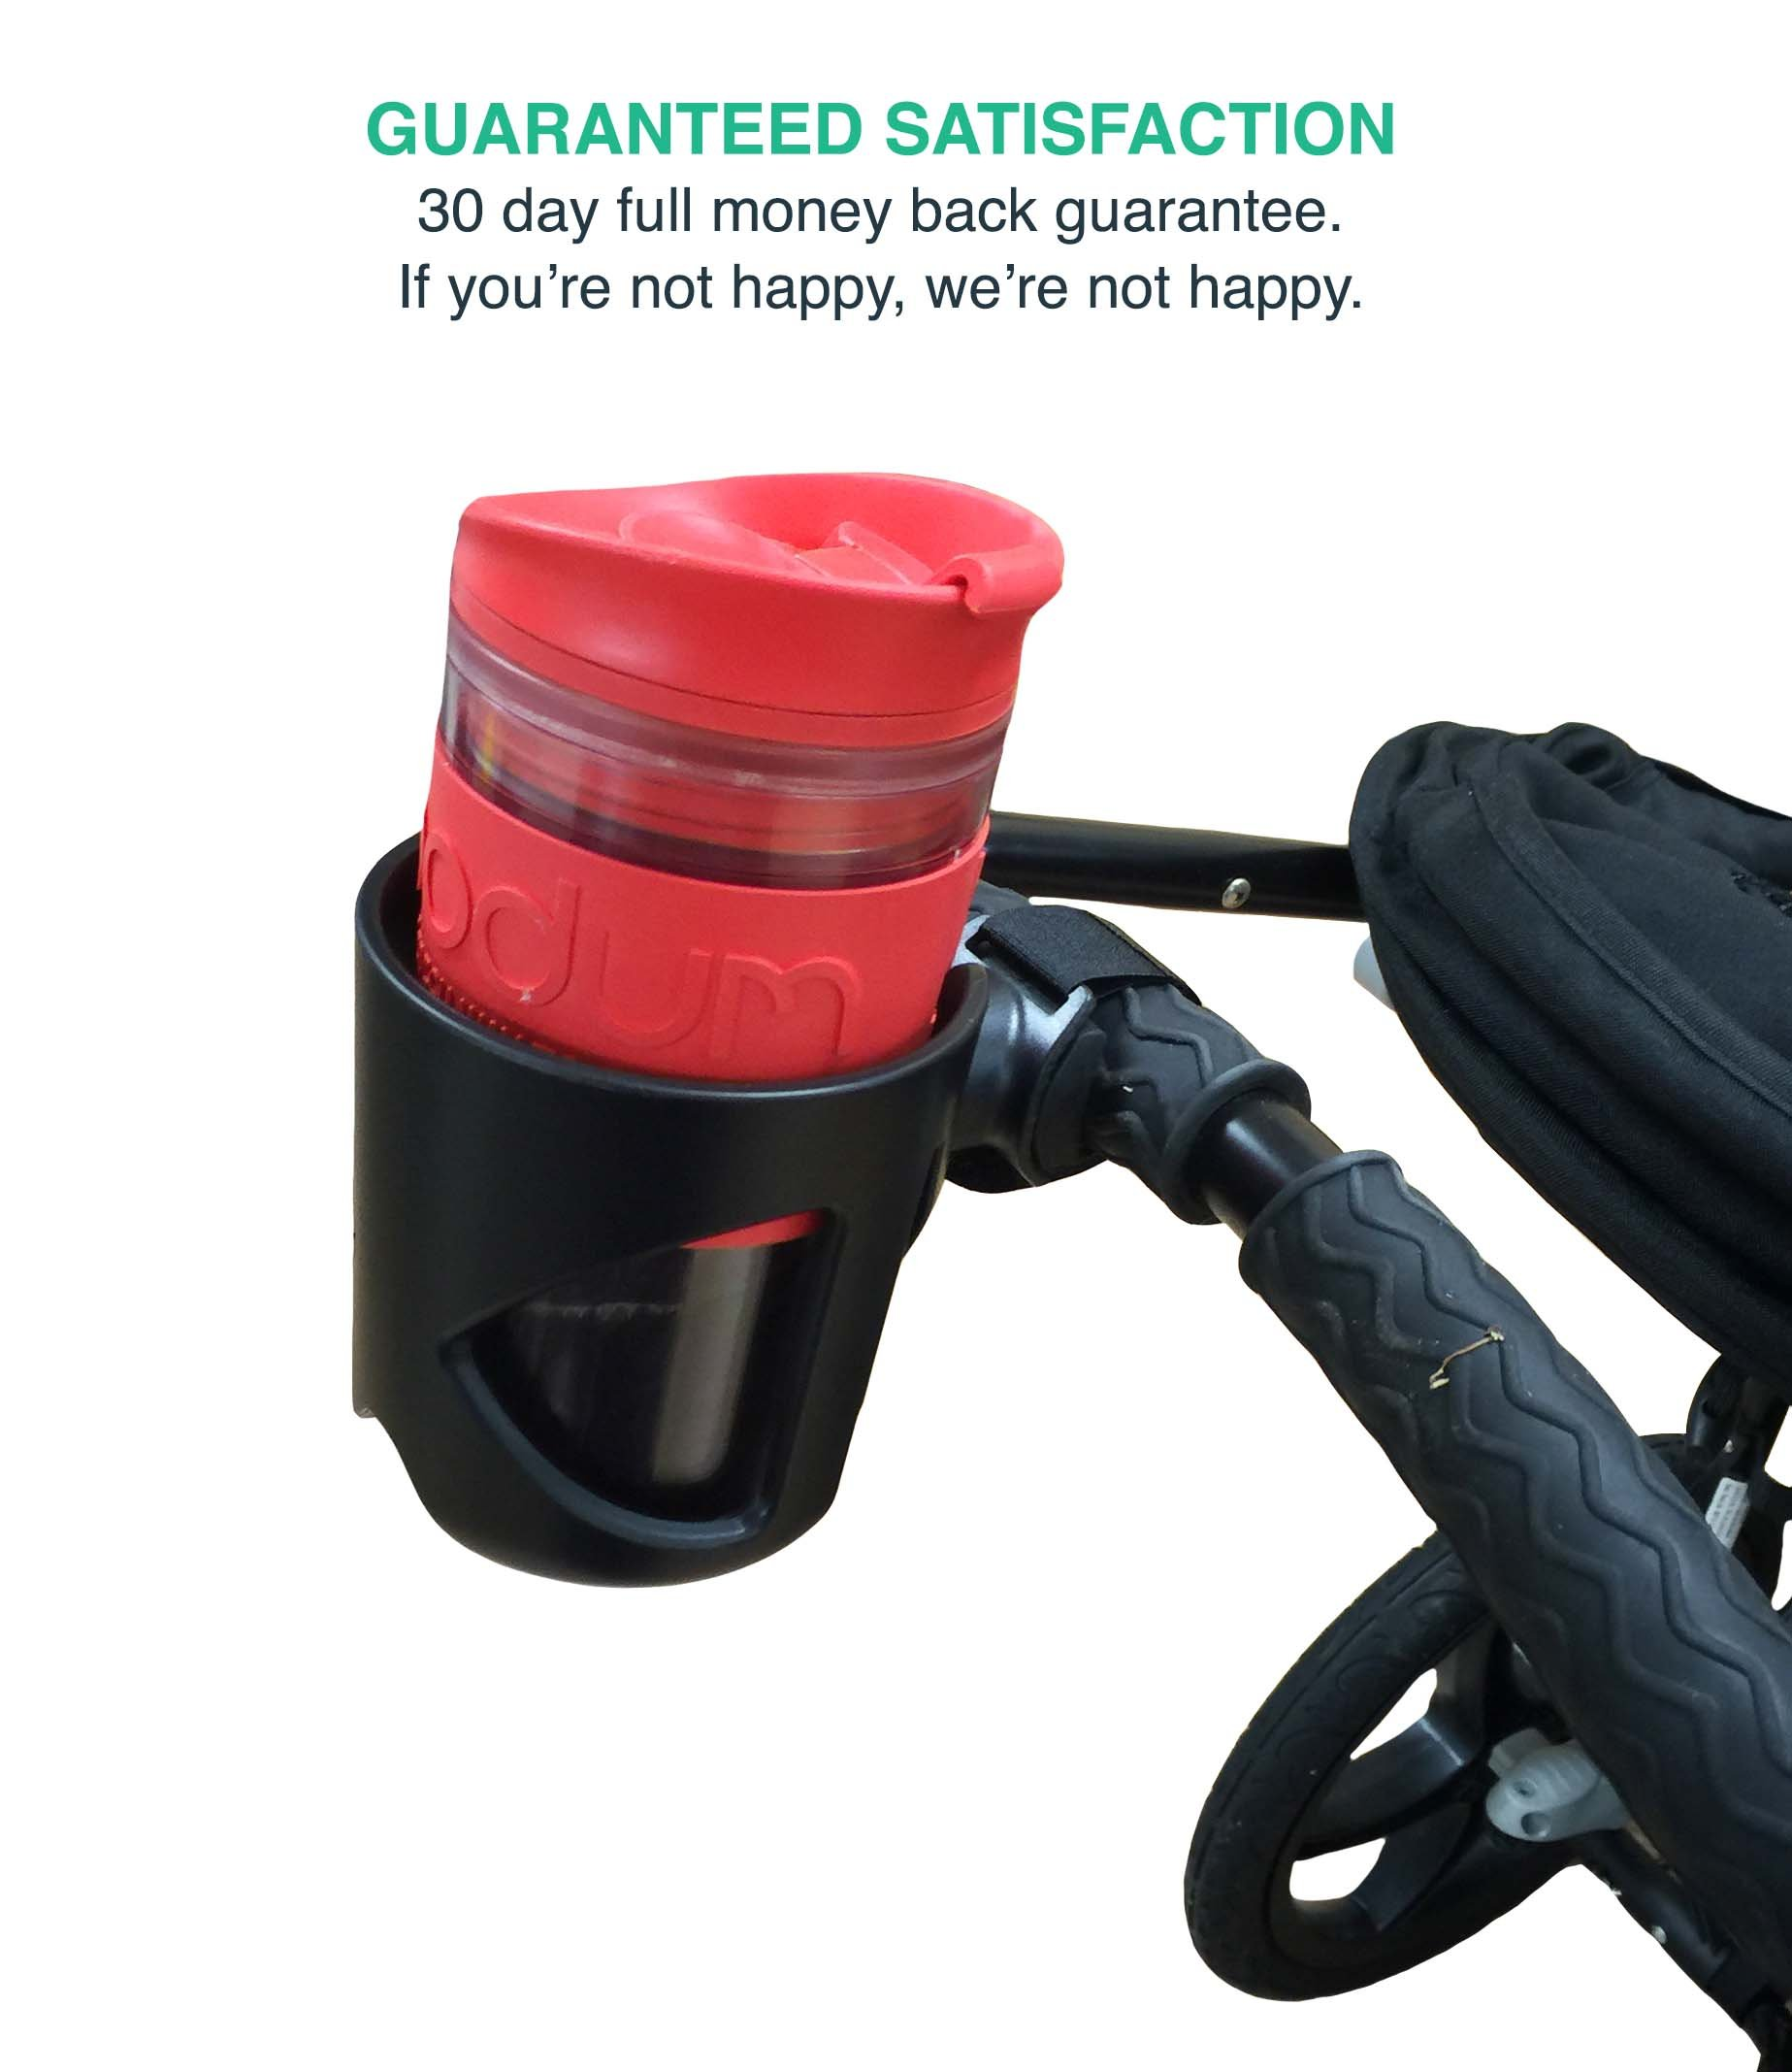 Replacement for Universal Stroller Cup Holder, Fits BabyHome, Baby Jogger, Britax, Bugaboo, Bumbleride, Chicco & More, by Think Crucial by Think Crucial (Image #4)